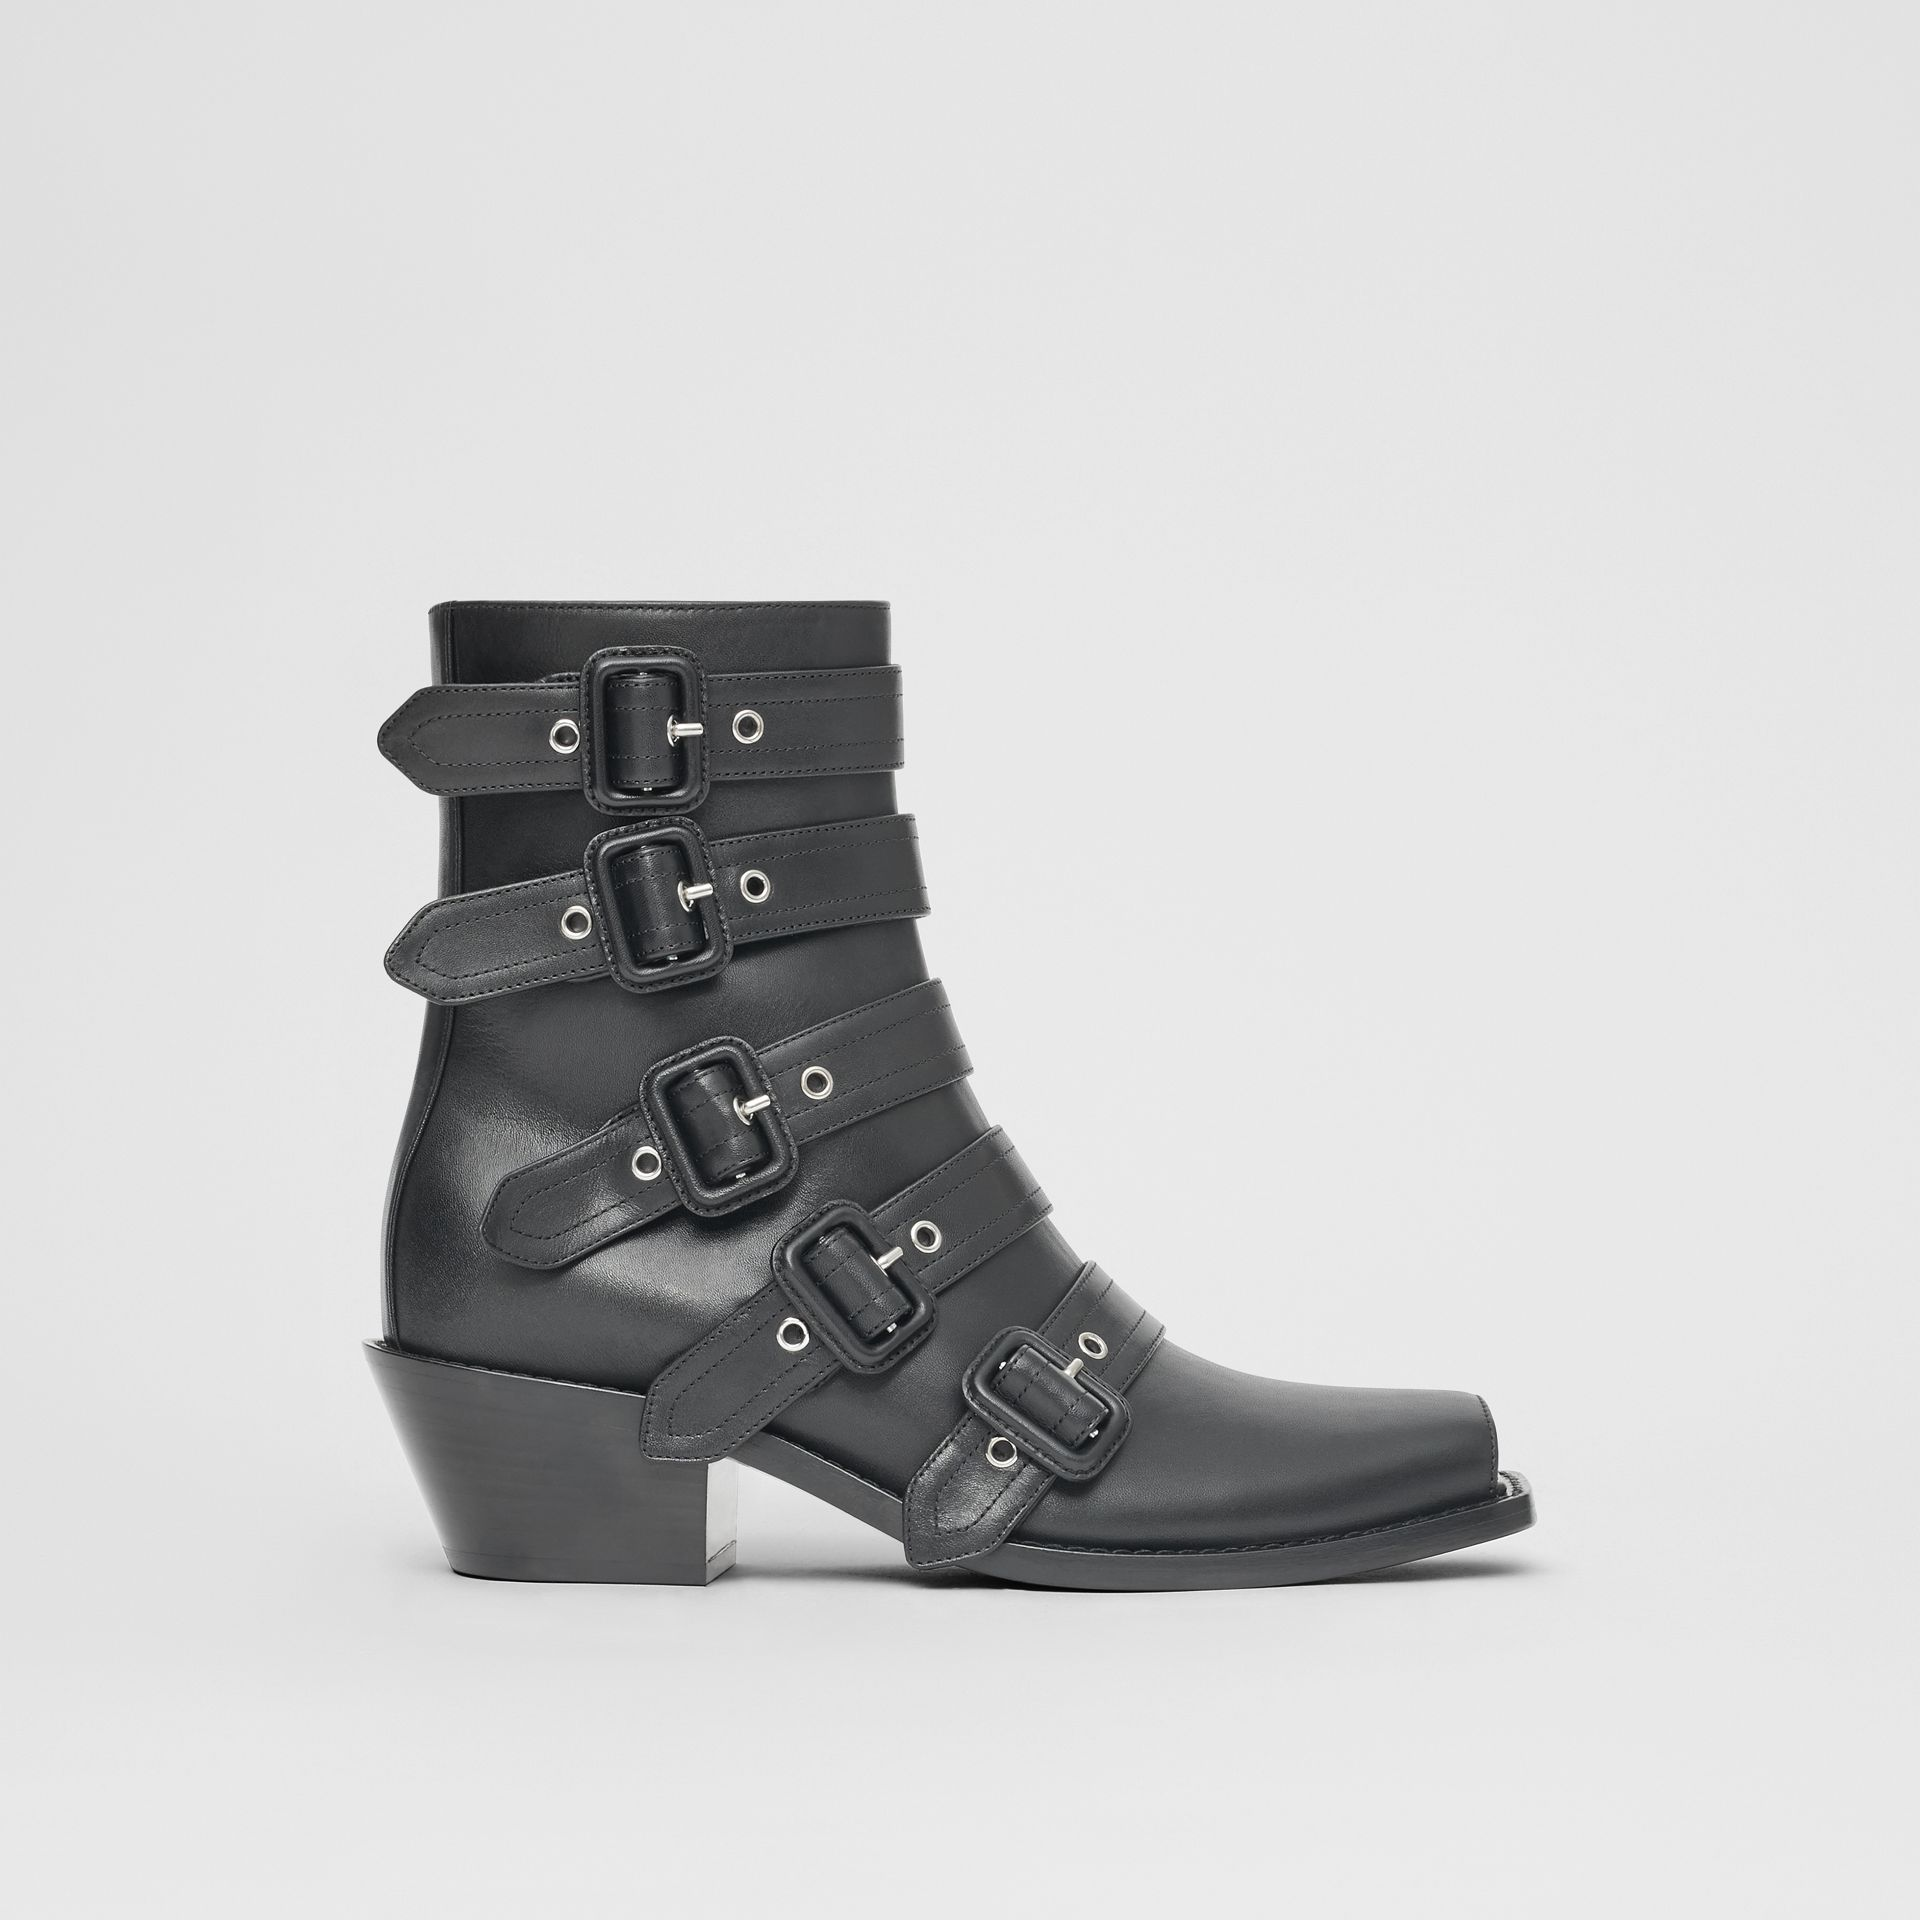 Buckled Leather Peep-toe Ankle Boots in Black - Women | Burberry United Kingdom - gallery image 5